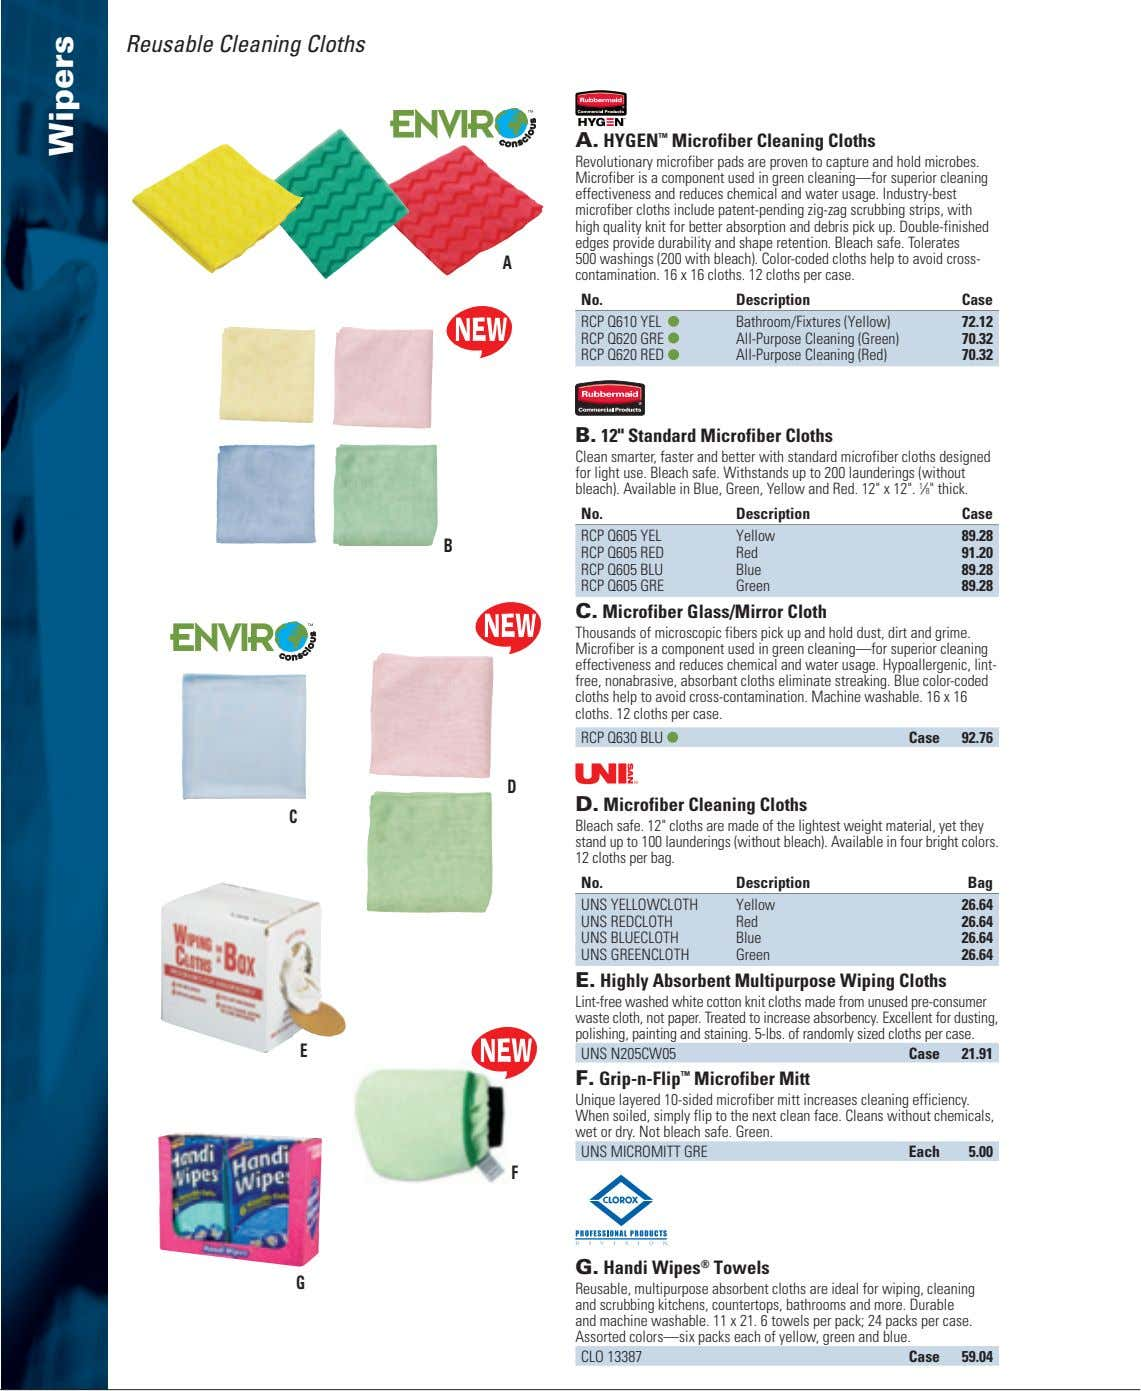 Reusable Cleaning Cloths A. HYGEN ™ Microfiber Cleaning Cloths Revolutionary microfiber pads are proven to